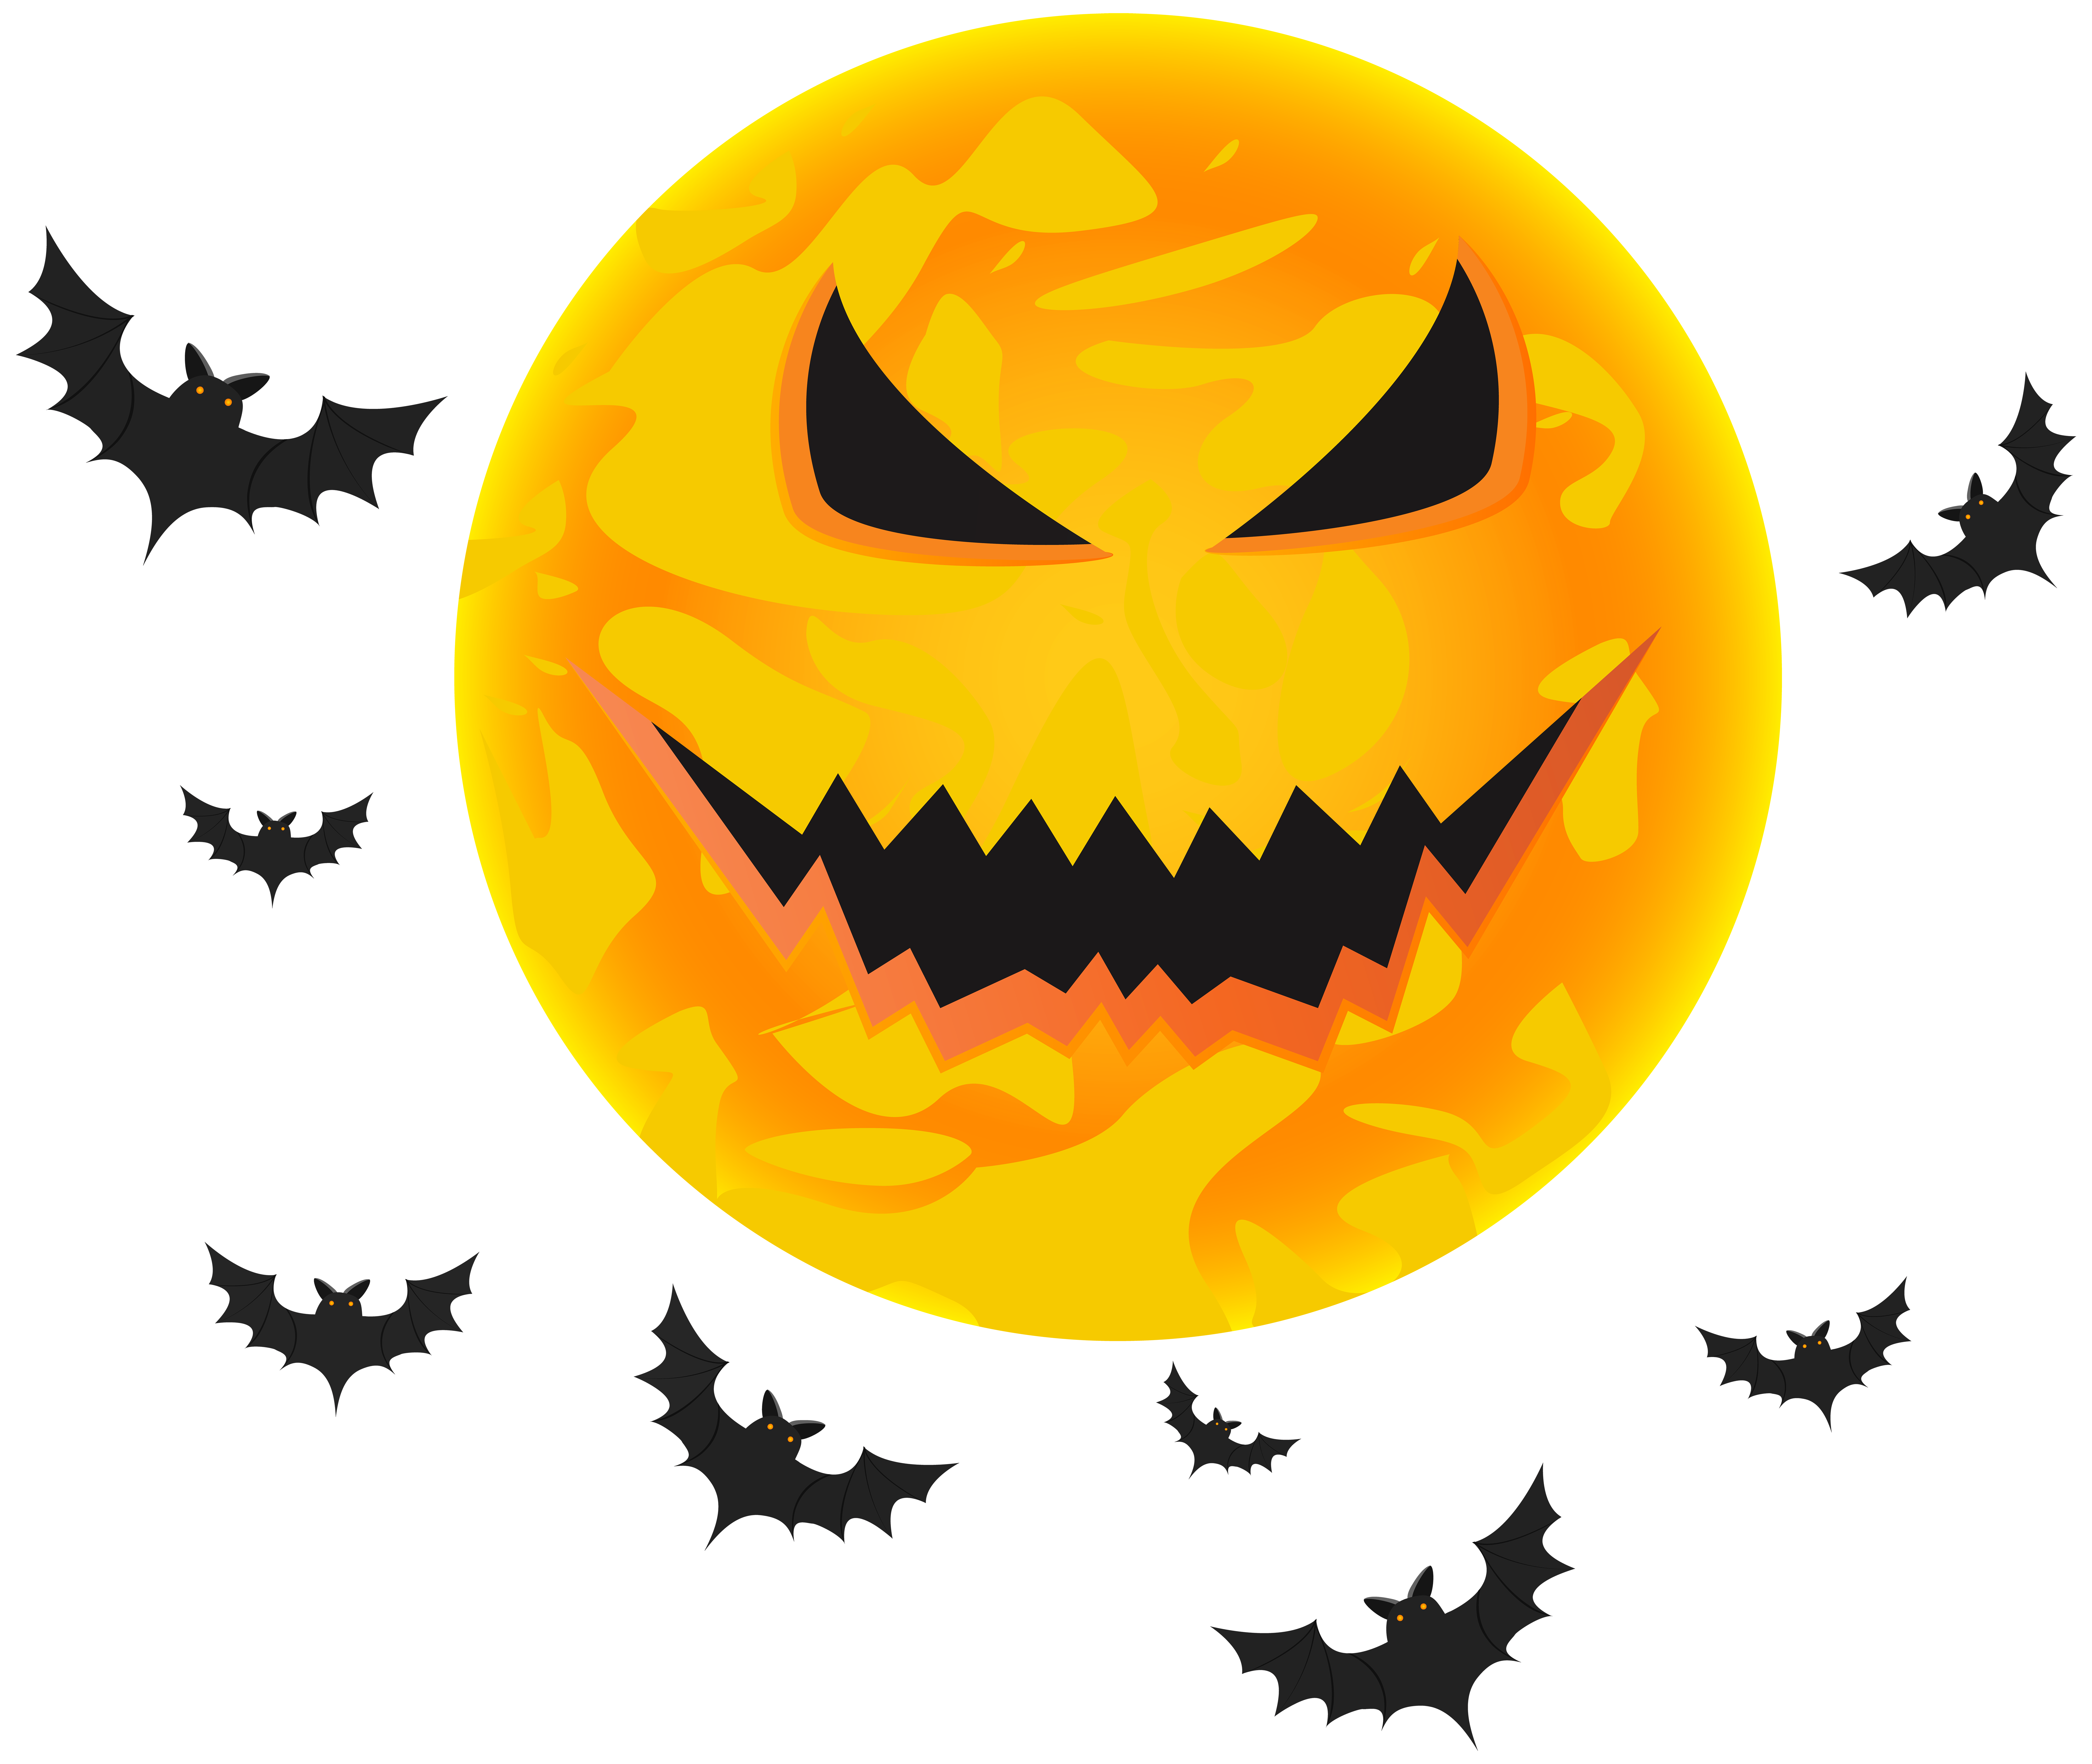 Halloween wallpaper clipart graphic free Halloween Yellow Moon and Bats Transparent Clip Art Image | Gallery ... graphic free